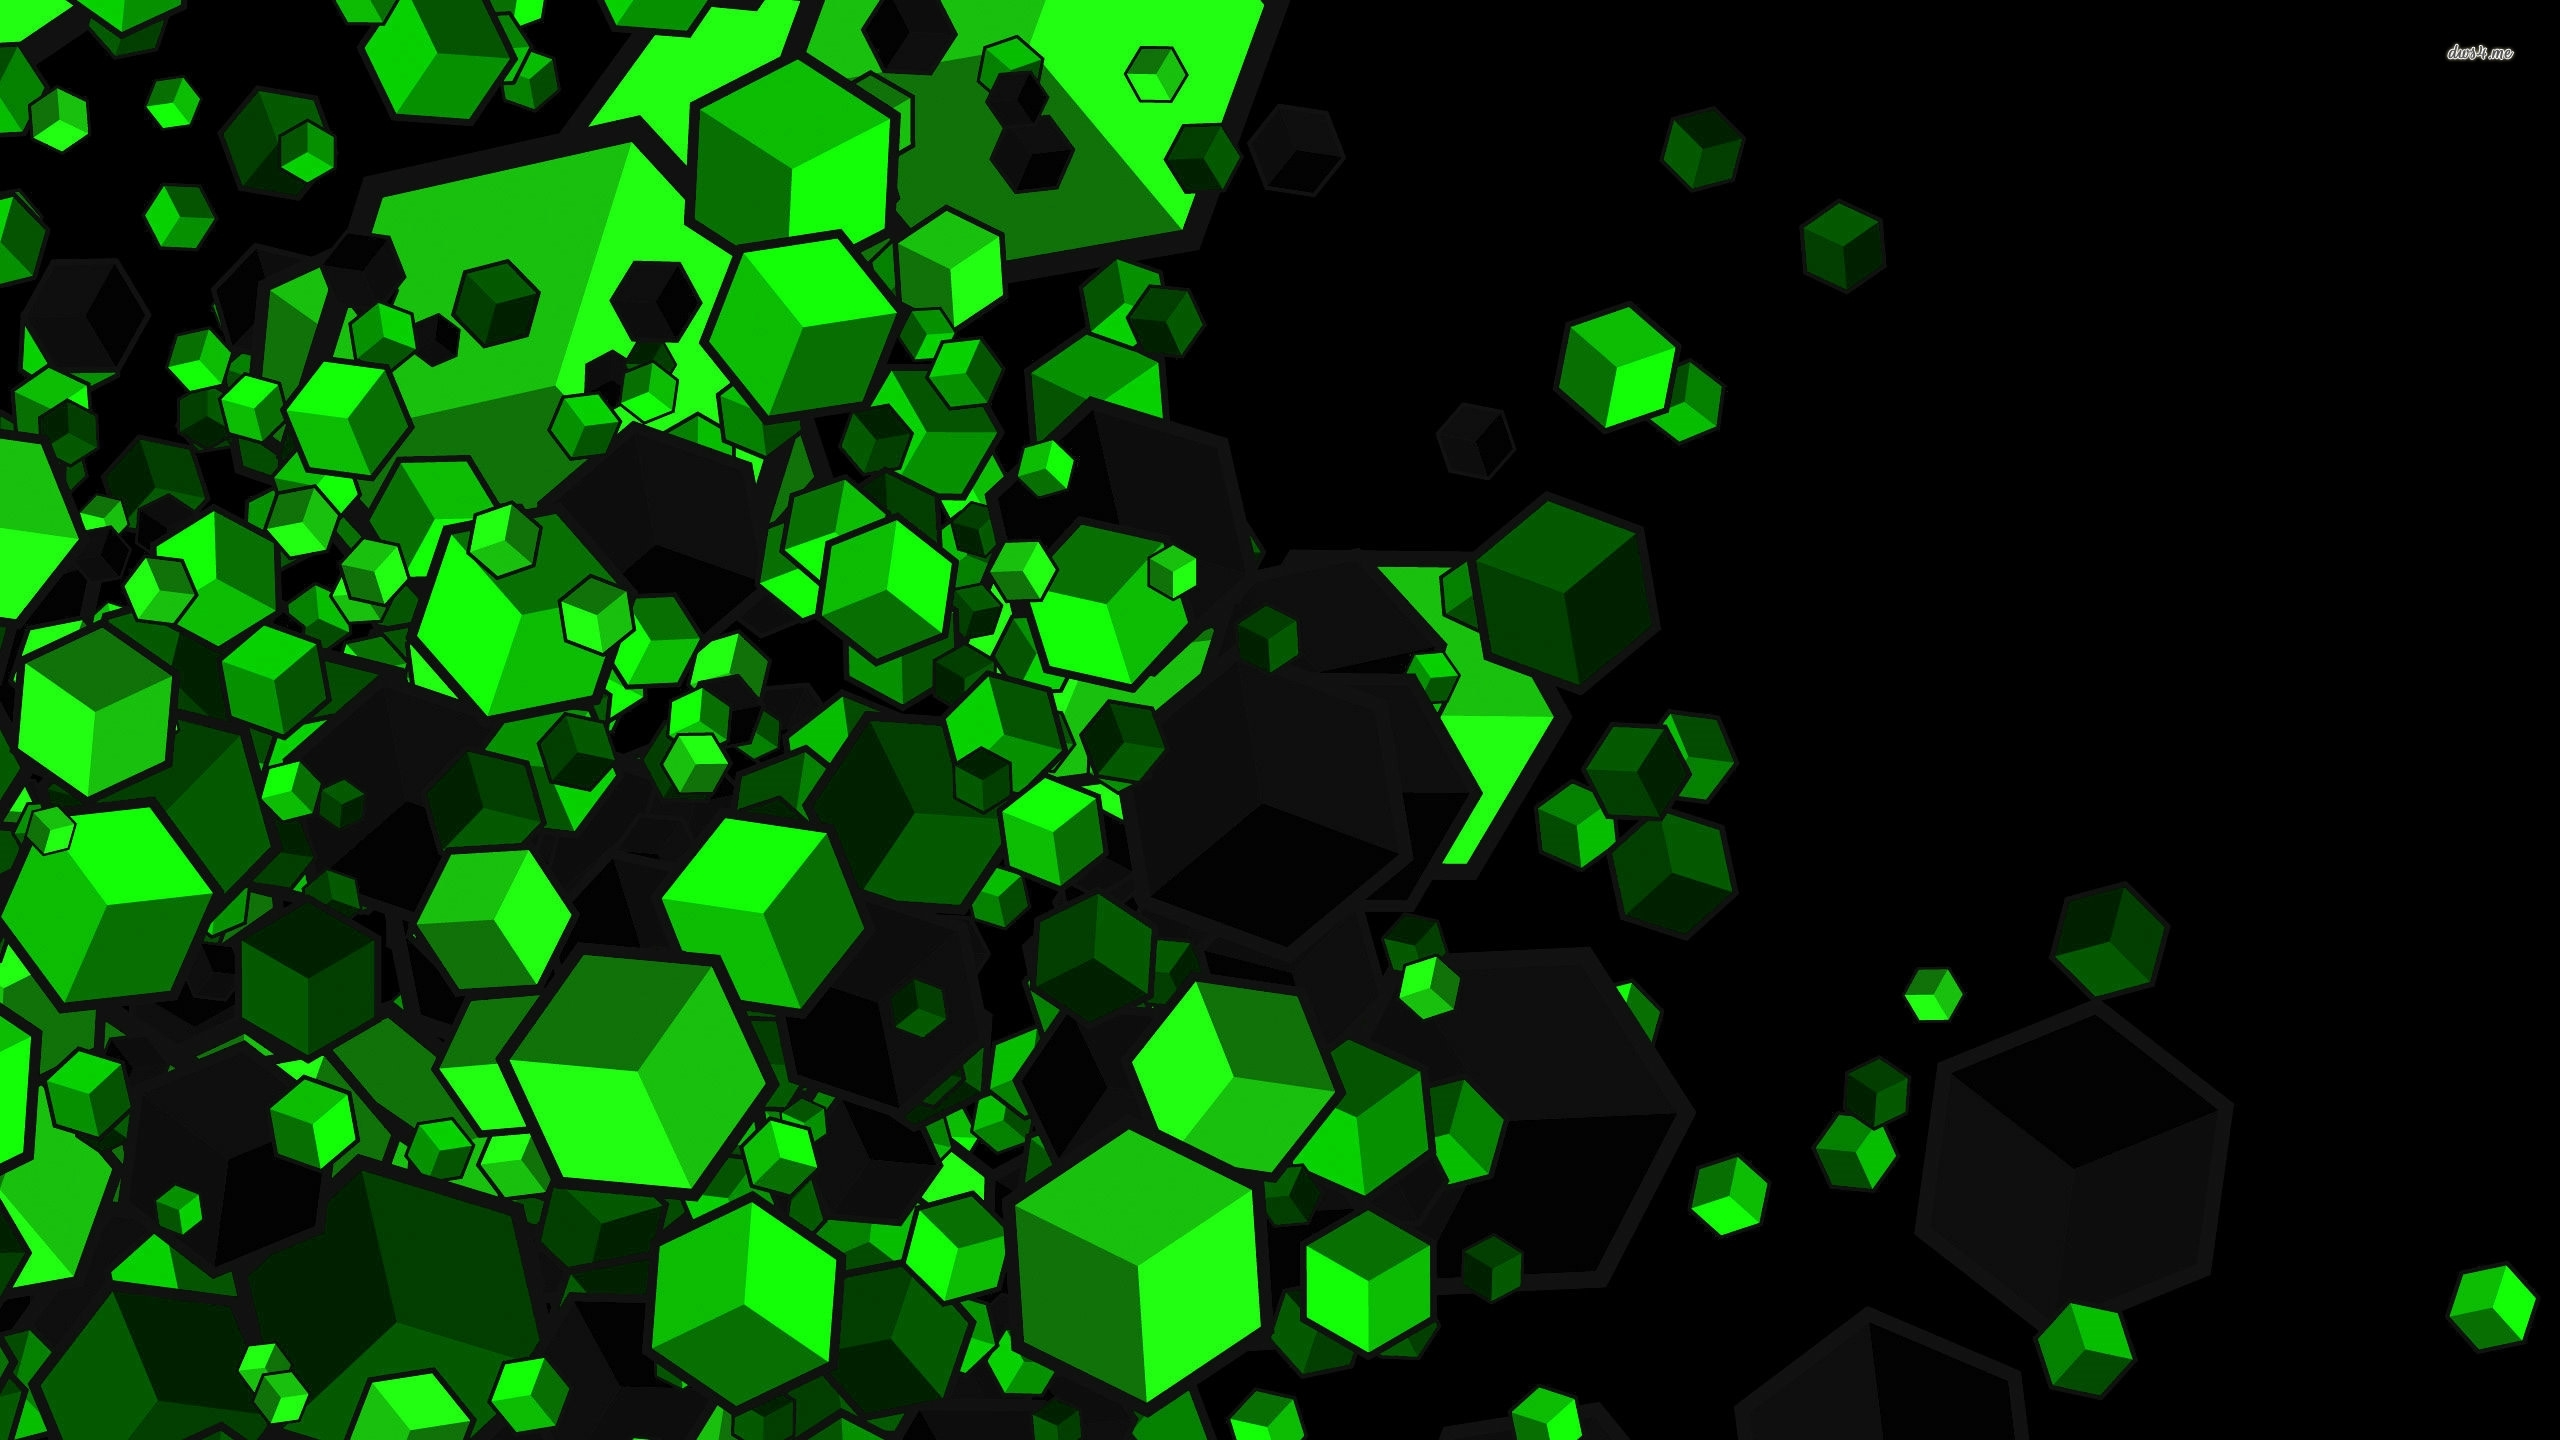 green or black cubes full hd fond d'écran and arrière-plan